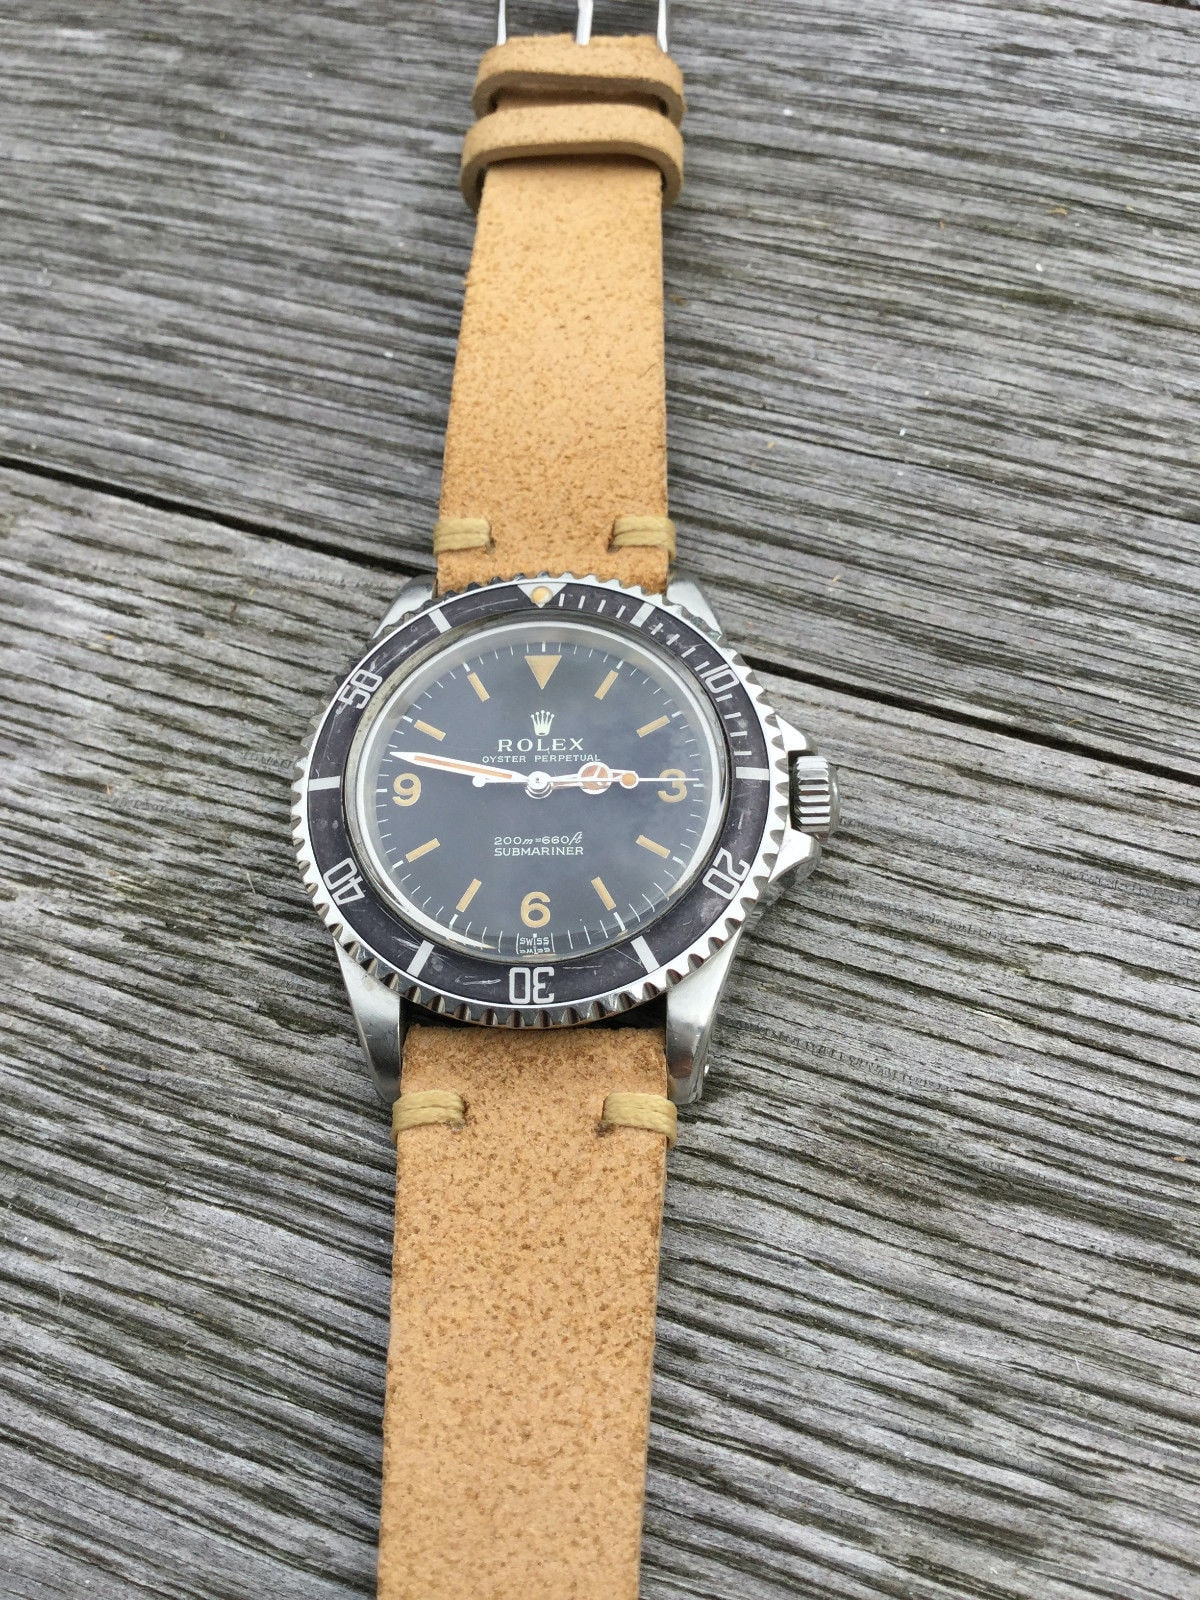 Yes There Is An Explorer Dial Sub On Ebay And No It's Not Real (And This Is The Easiest Way To Tell) Yes There Is An Explorer Dial Sub On Ebay And No It's Not Real (And This Is The Easiest Way To Tell) s l1600 2